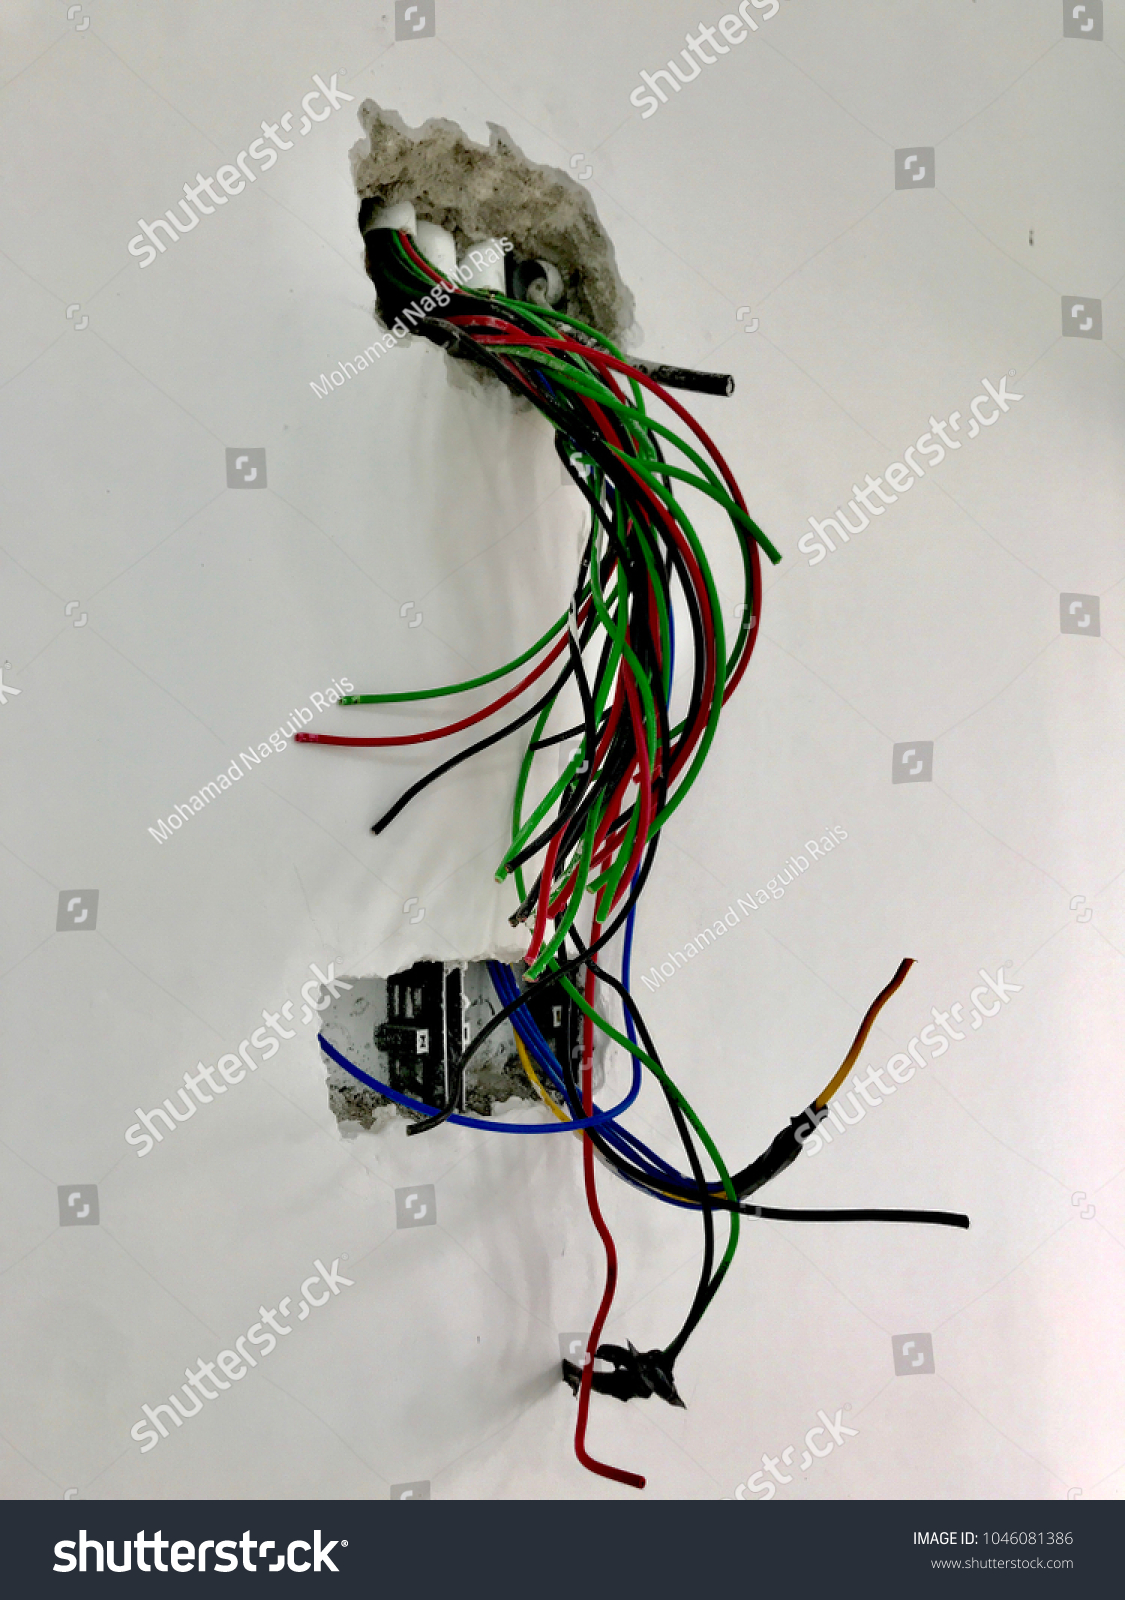 Earth Ground Life Neutral Wires Tangled Stock Photo (Royalty Free ...